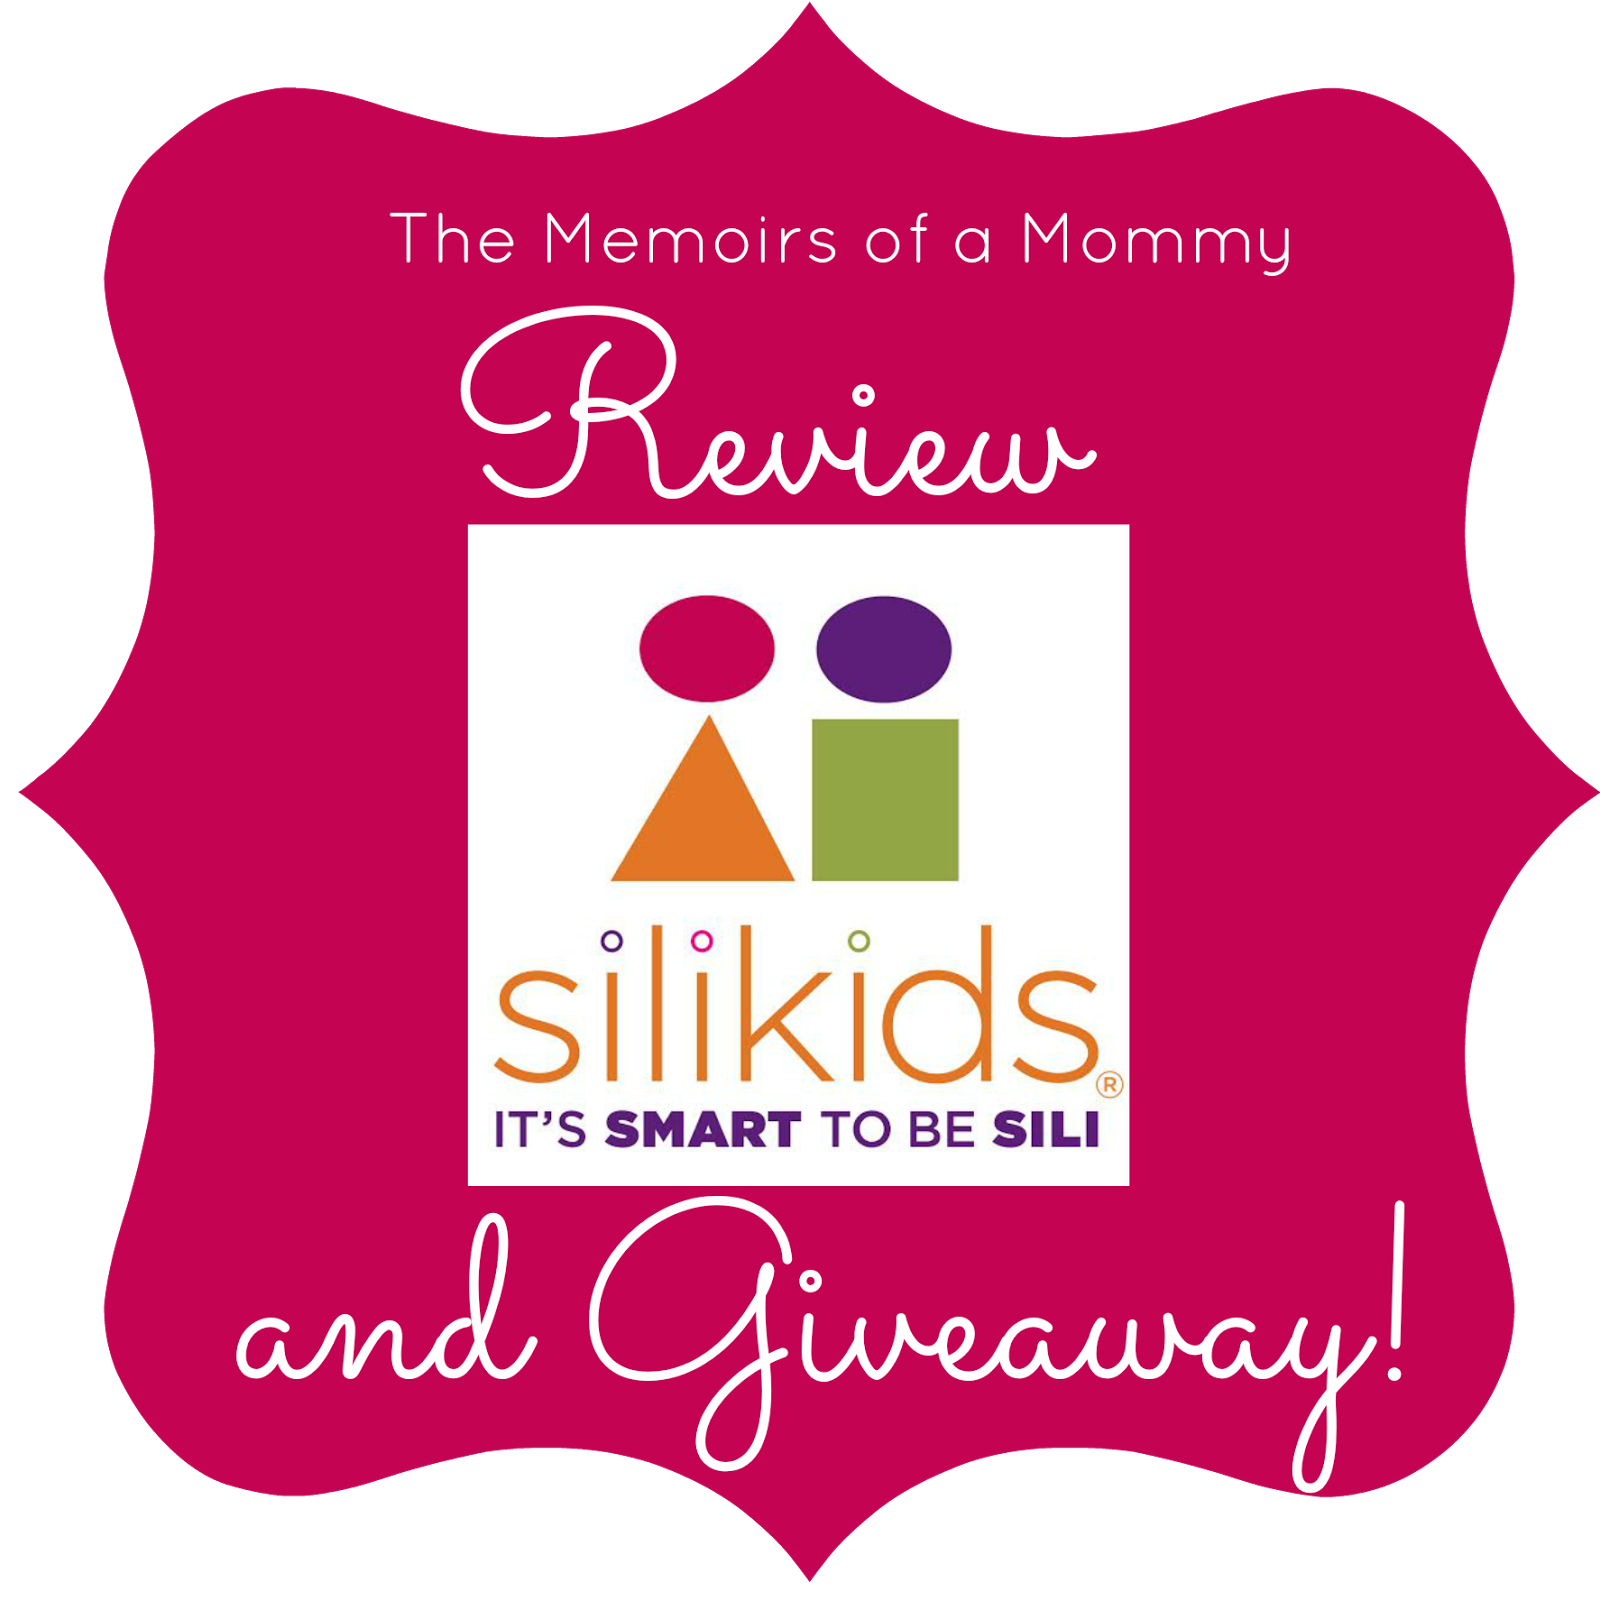 Silikids Review & Giveaway Memoirs, Giveaway, Mommies